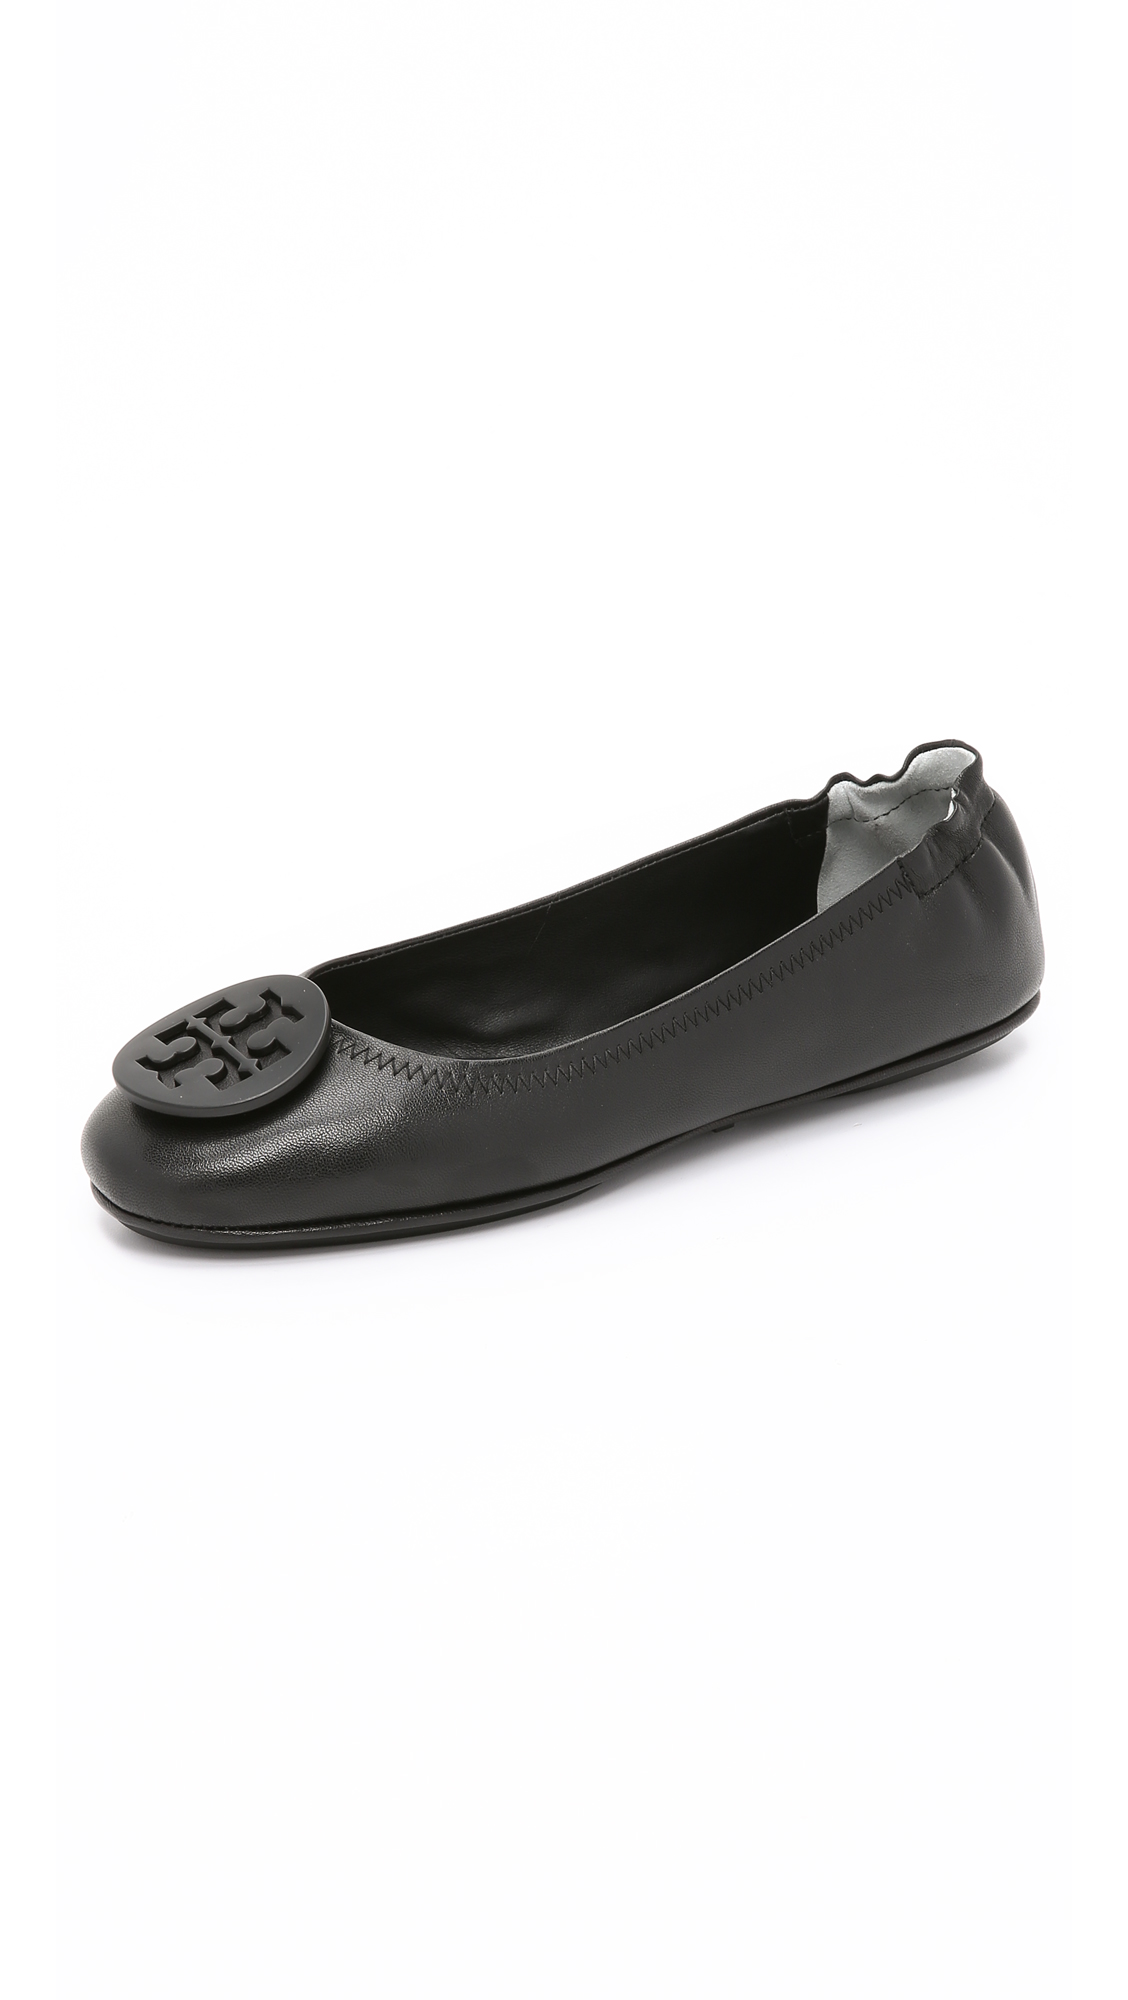 Tory Burch Minnie Travel Ballet Flats - Black